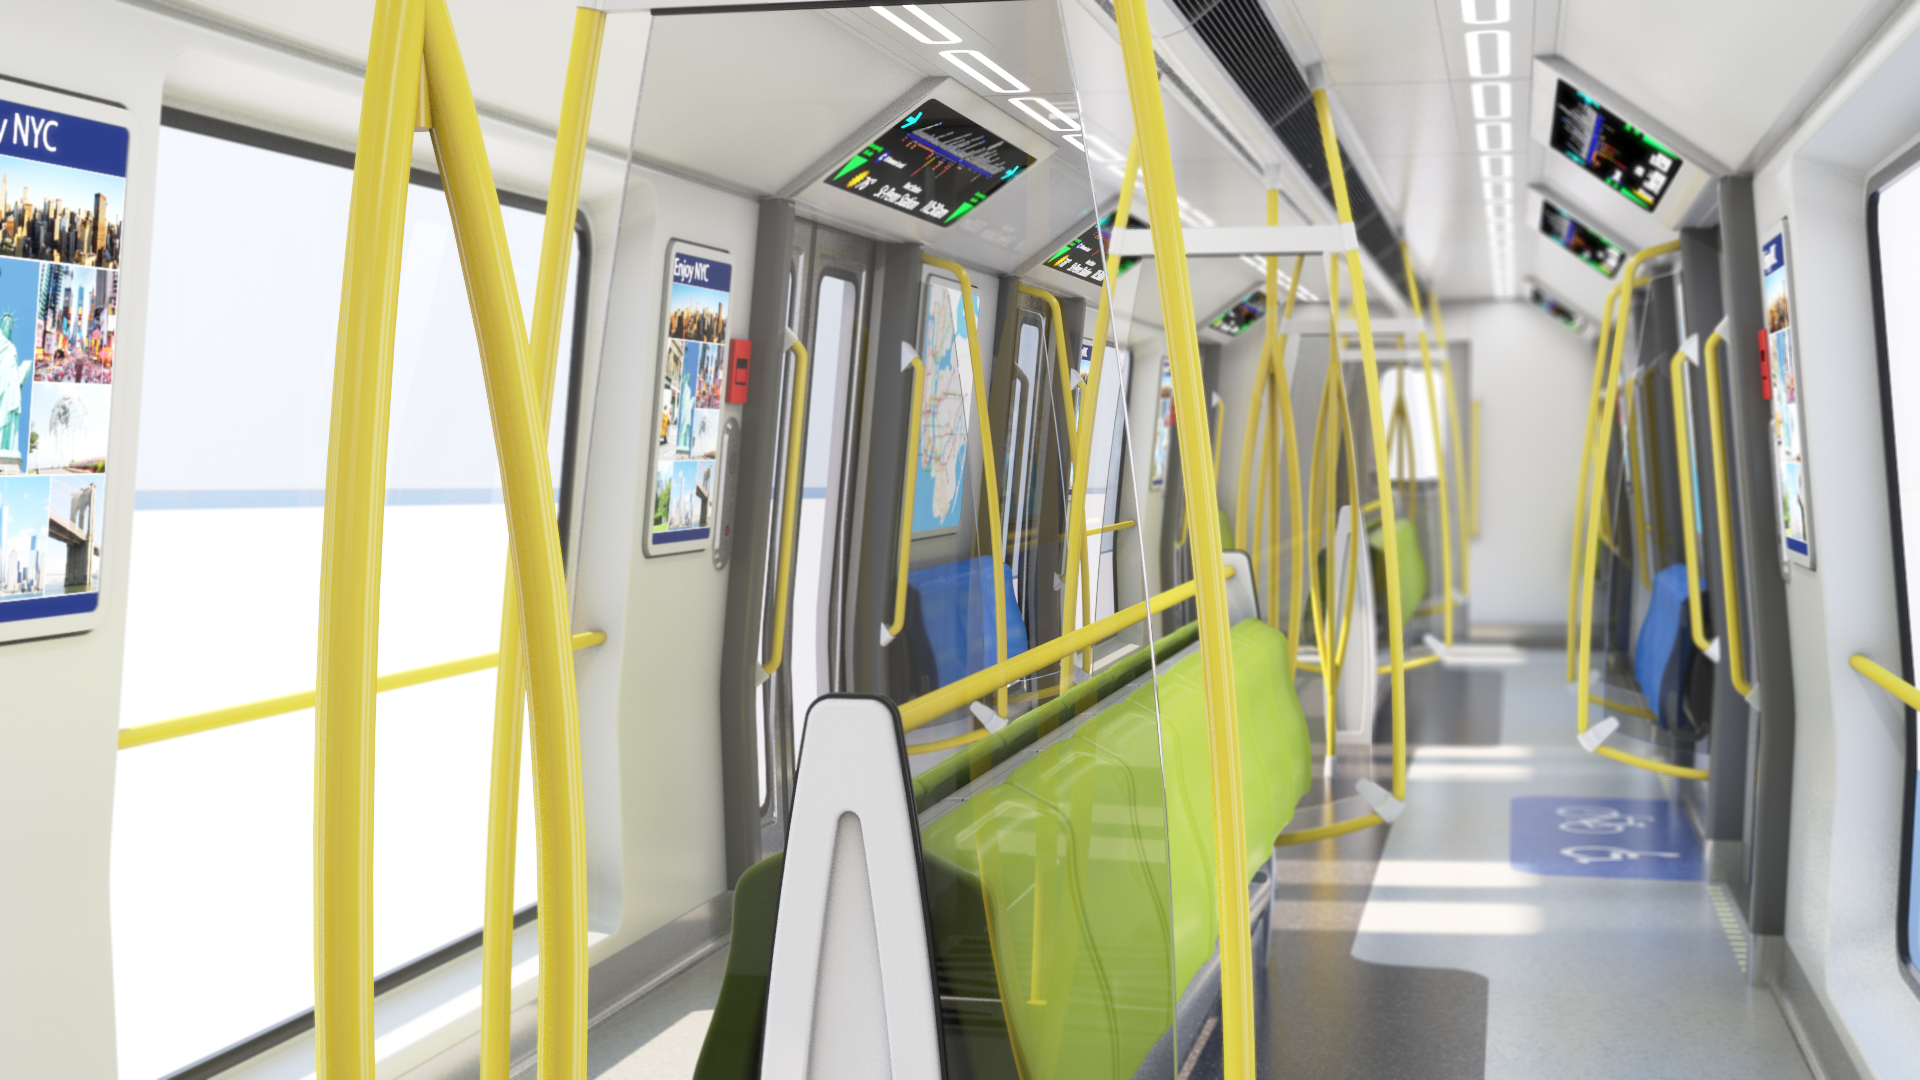 NYCT R211 – Subway Car Interior